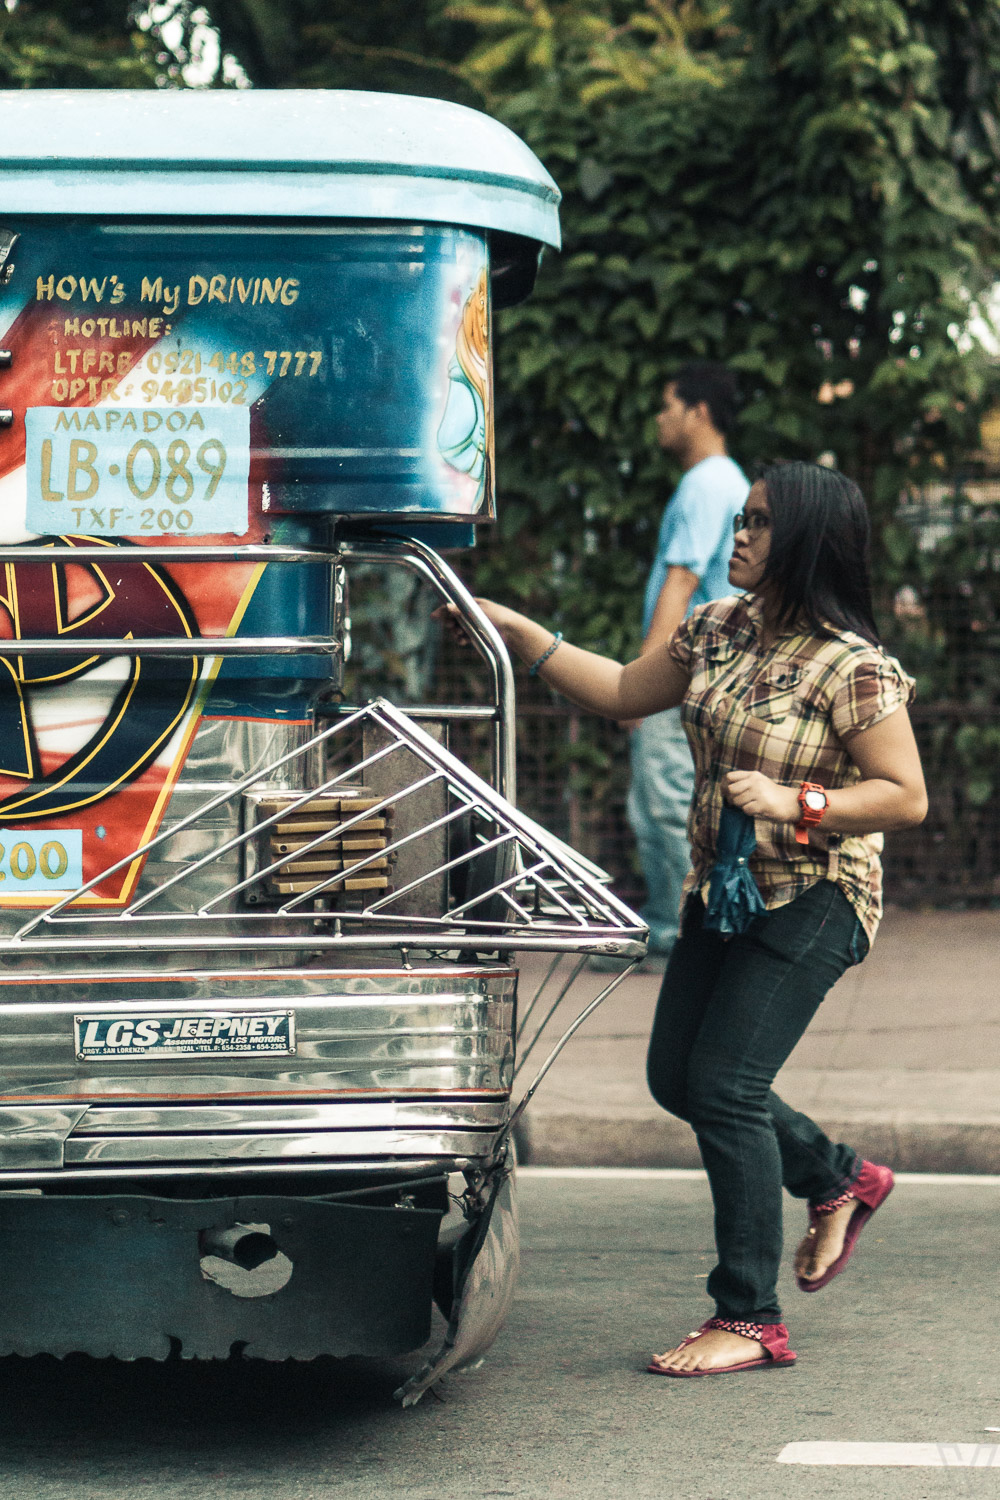 A woman getting on a jeepney.